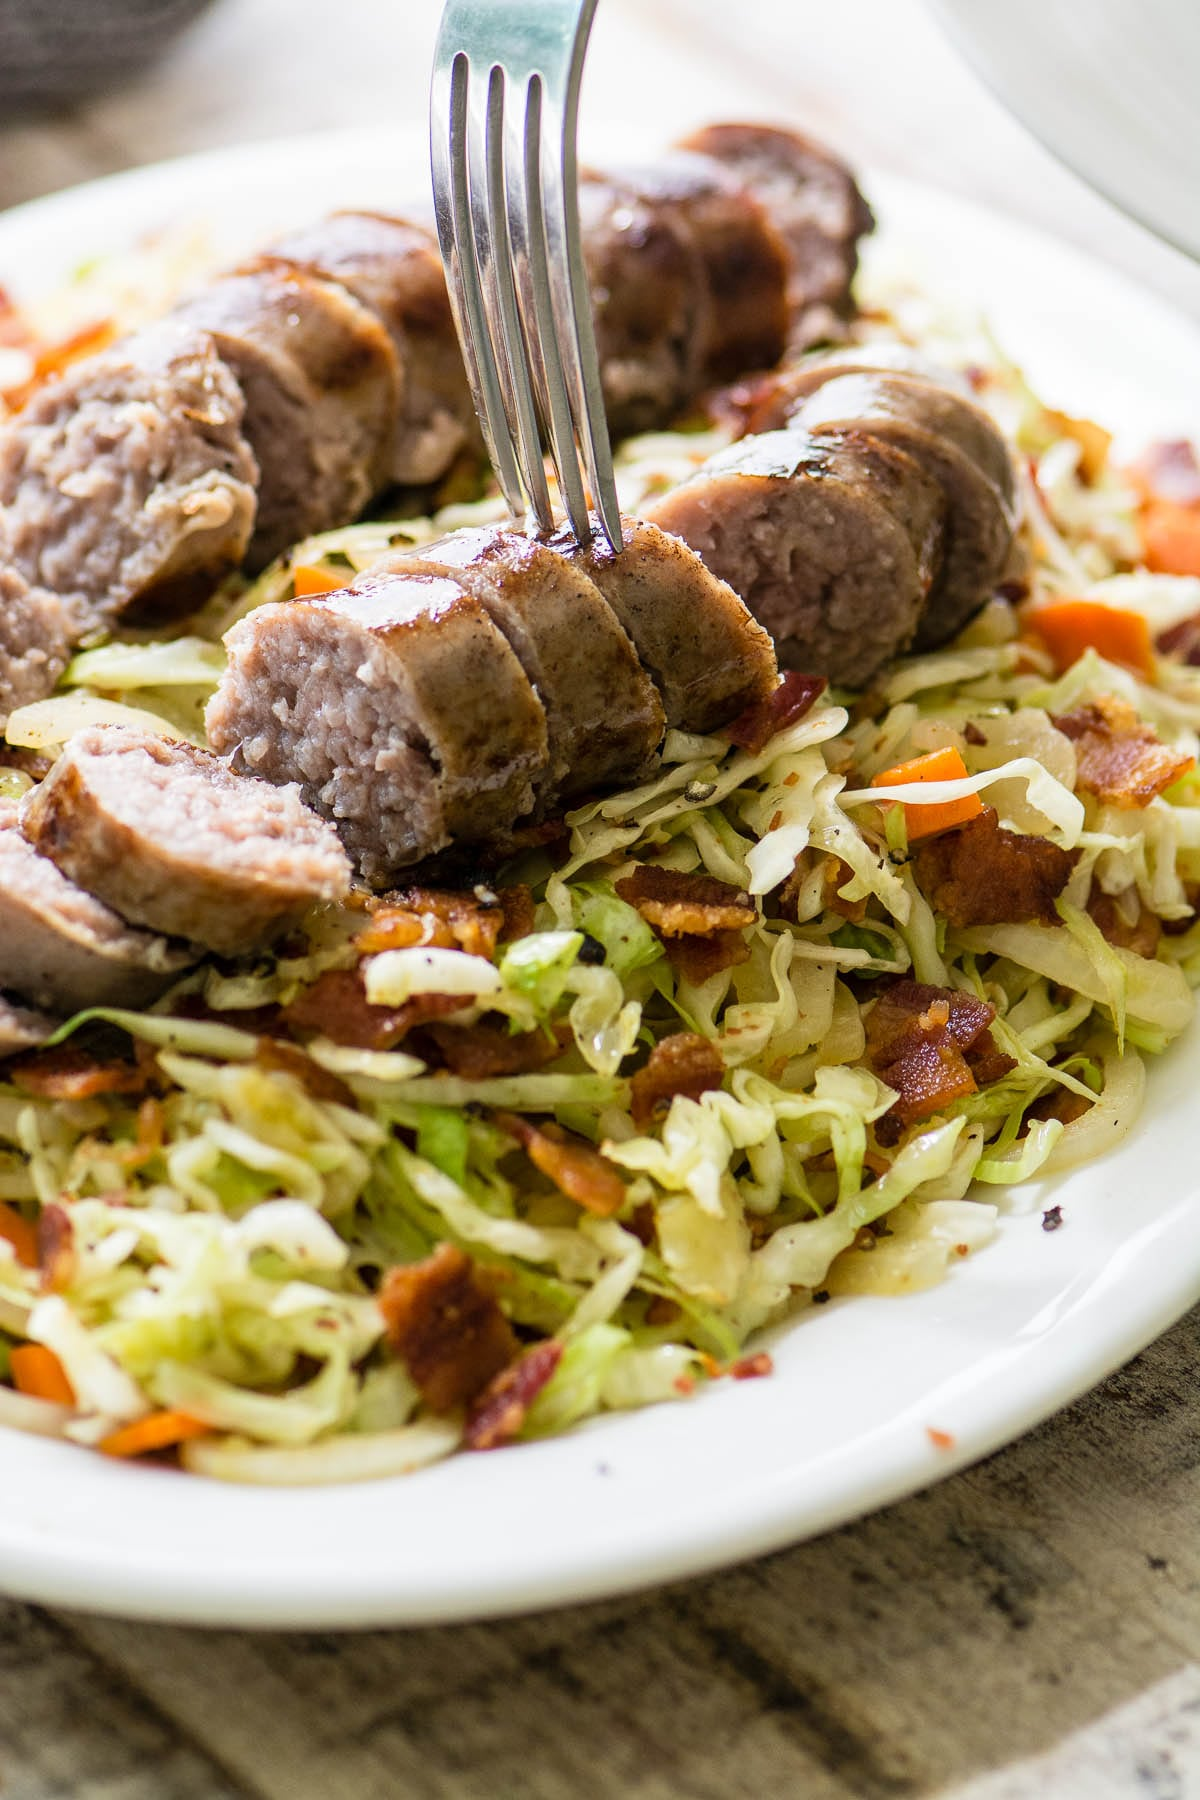 A plate of fried cabbage and bacon slaw topped with sliced brats